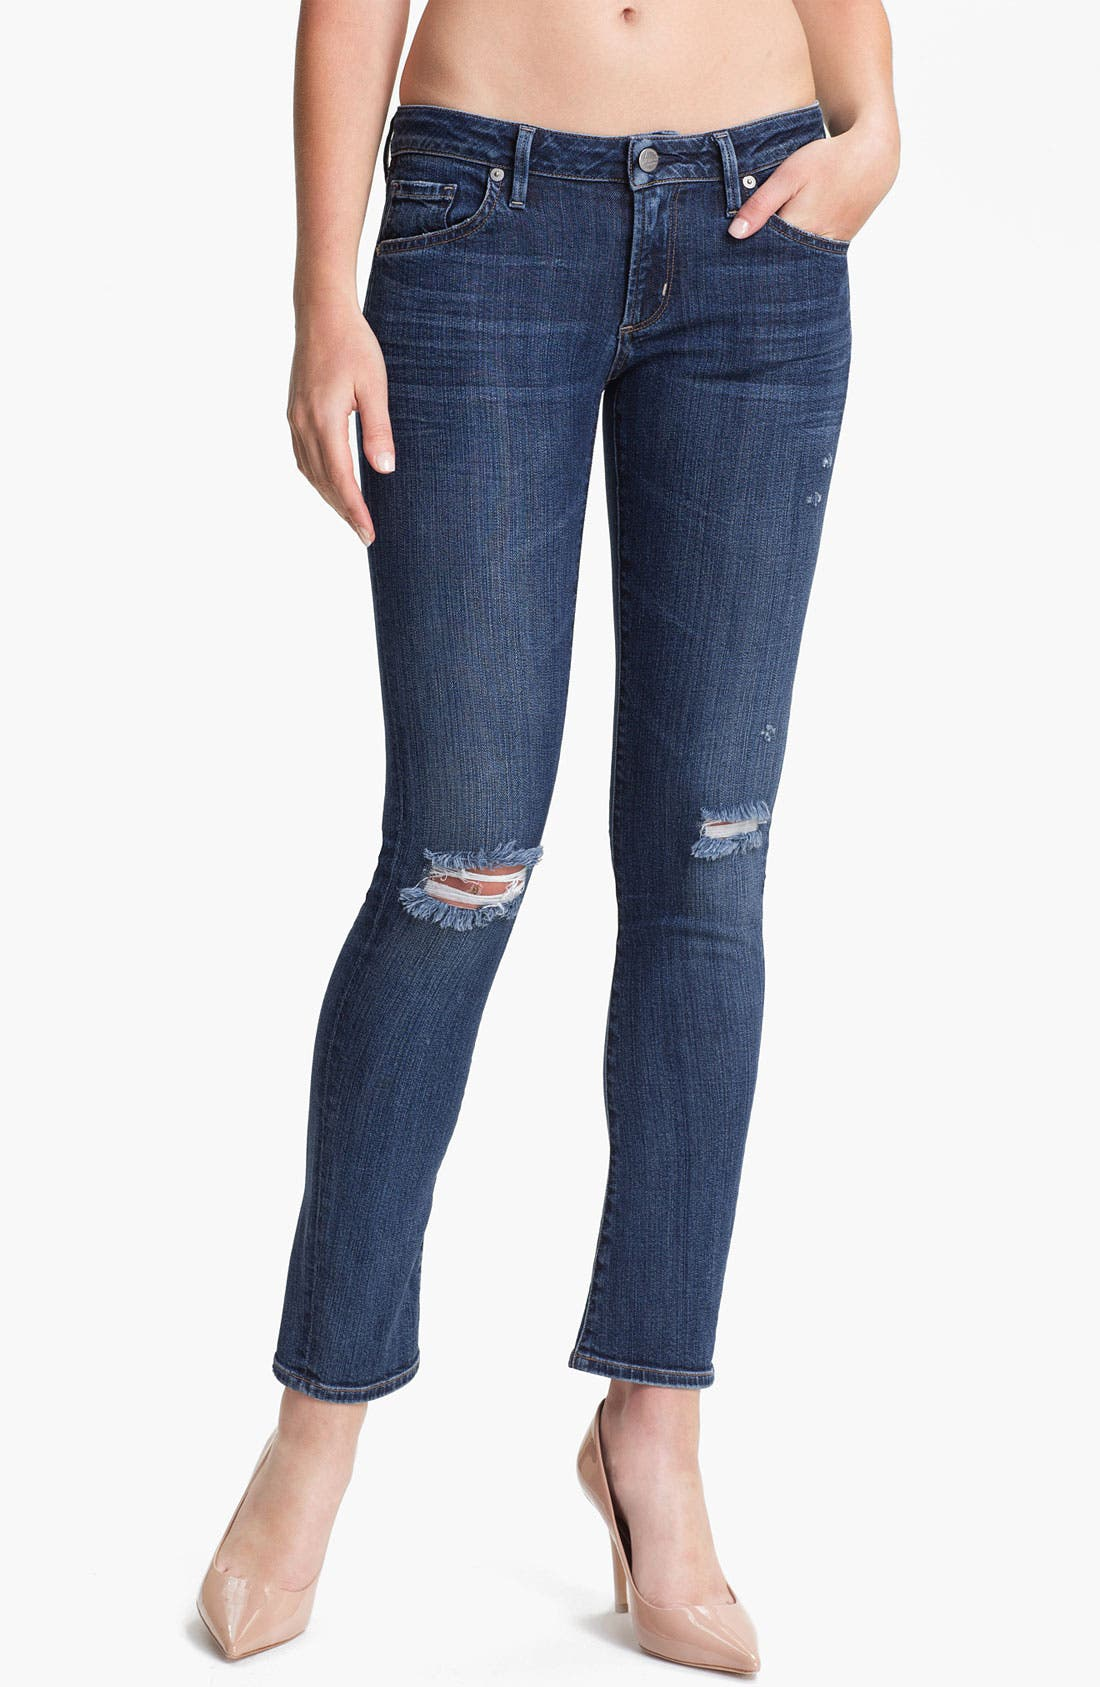 Alternate Image 1 Selected - Citizens of Humanity 'Racer' Skinny Jeans (Poison)